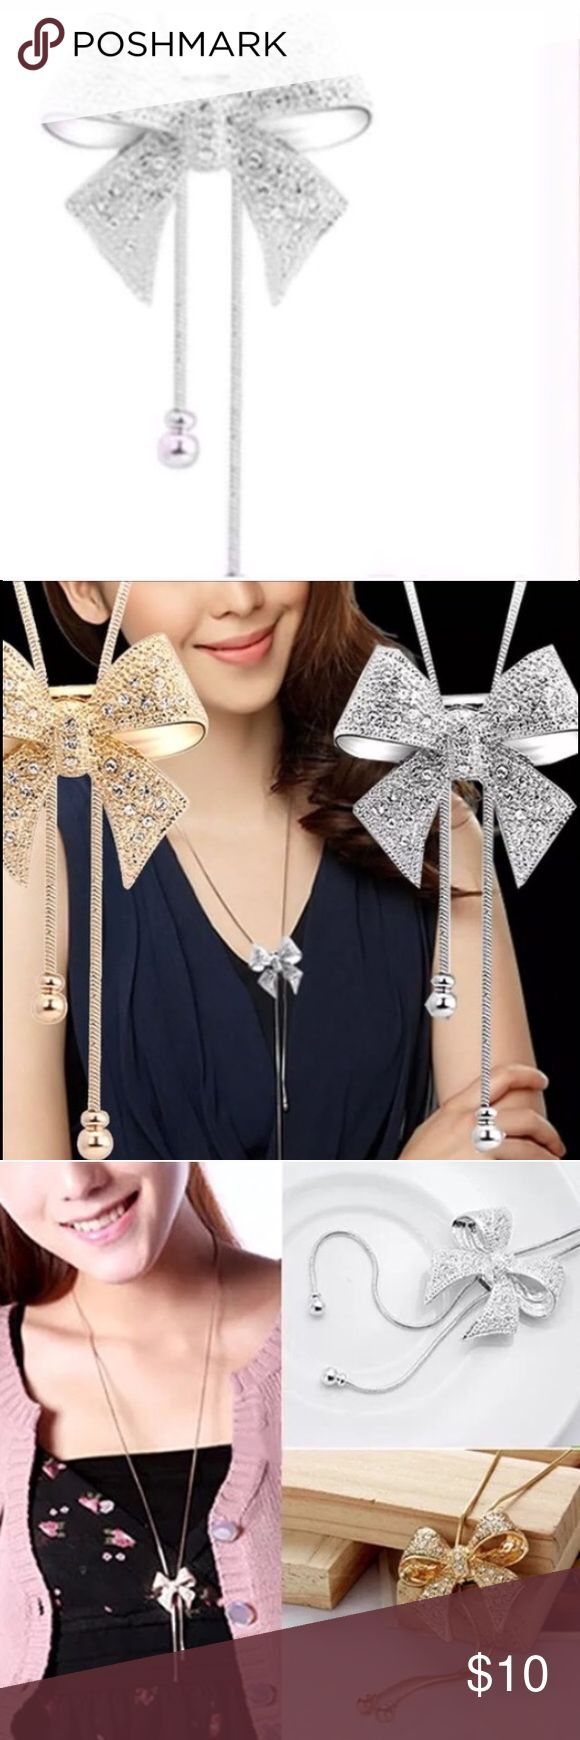 silver bow necklace great for holidays Long sweater necklace Jewelry Necklaces